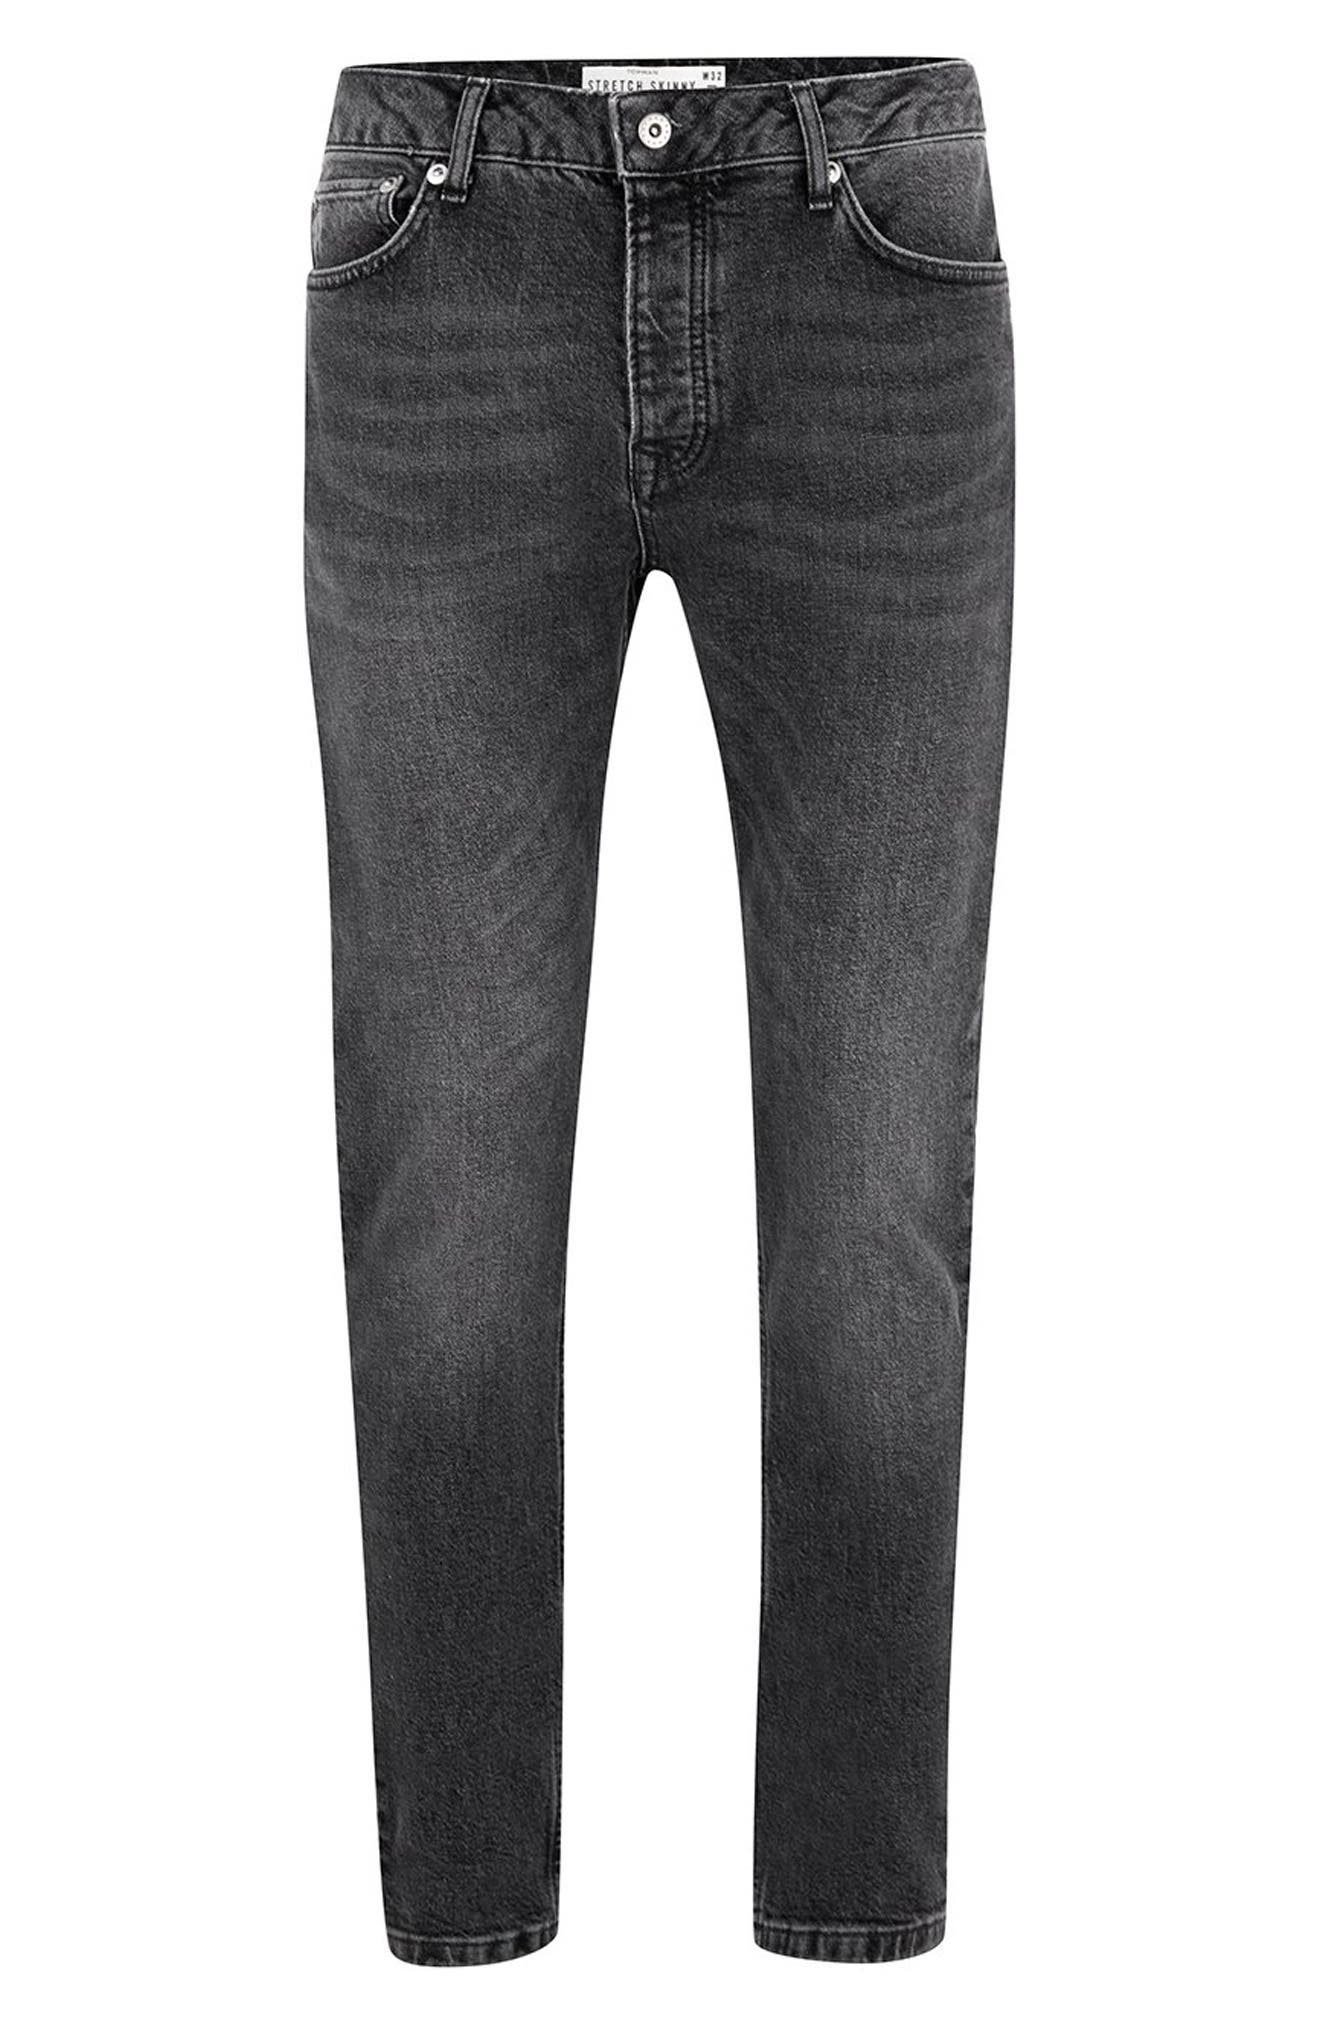 TOPMAN,                             Washed Skinny Fit Jeans,                             Alternate thumbnail 4, color,                             BLACK